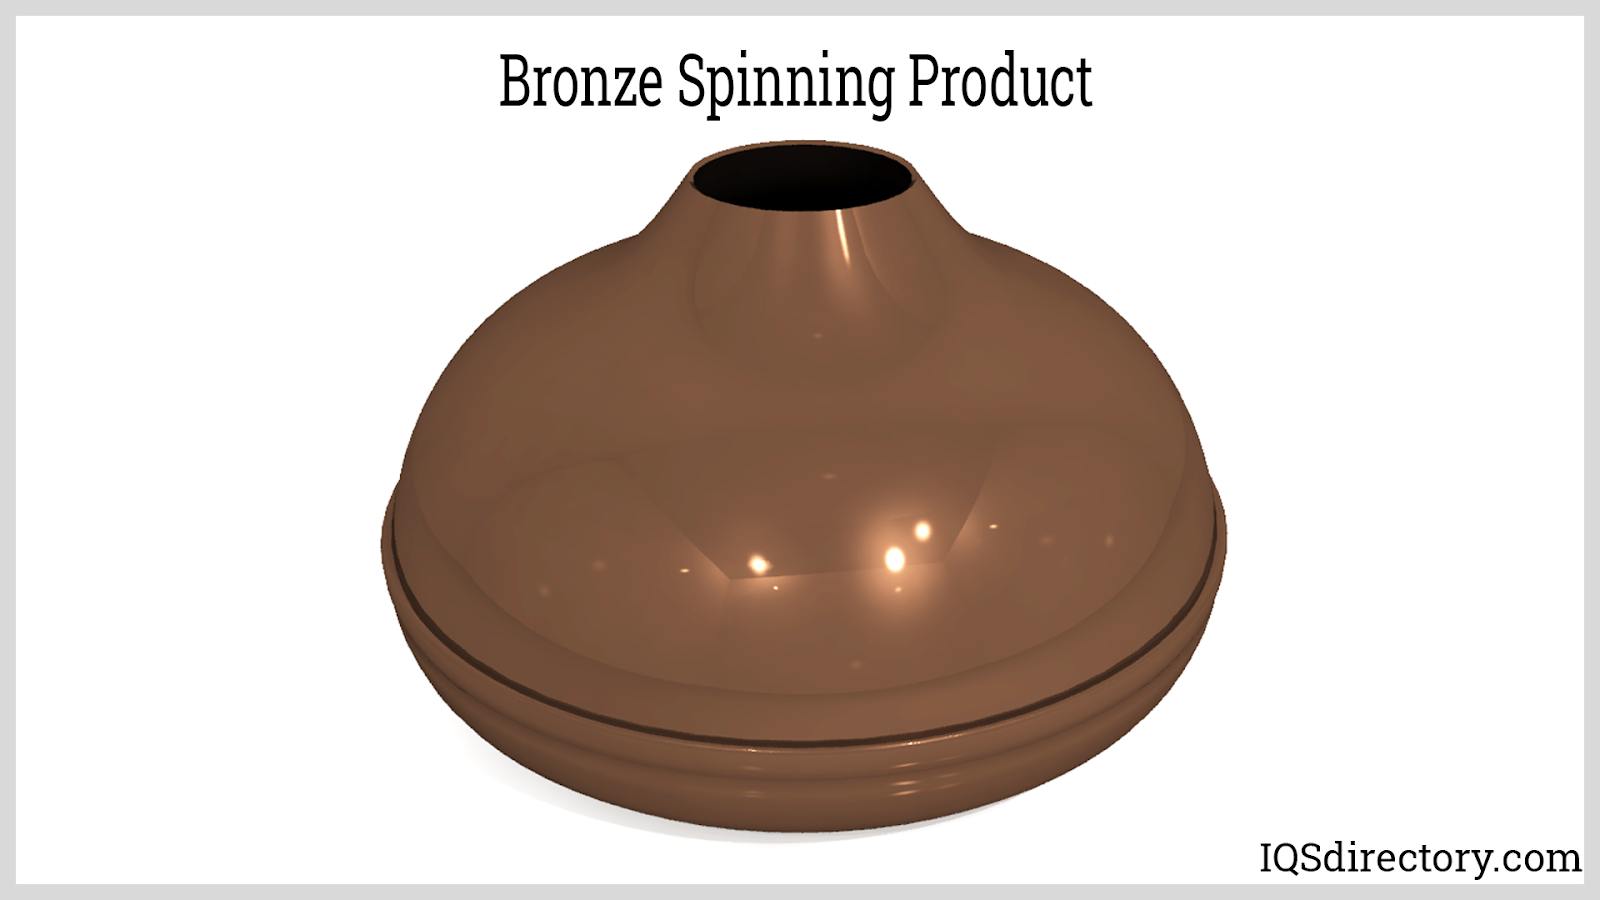 Bronze Spinning Product